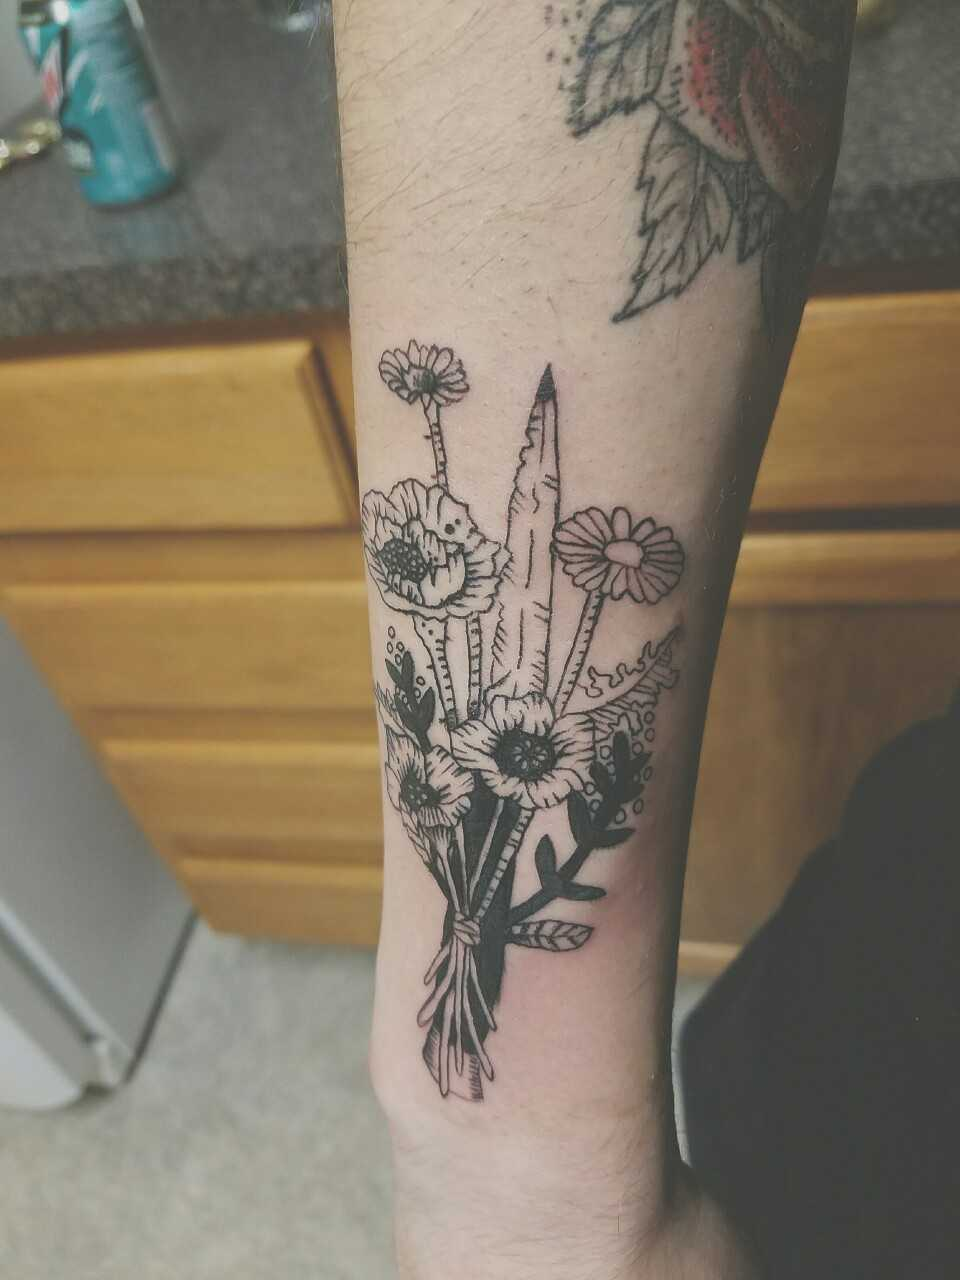 Dagger and flowers by dave bauer